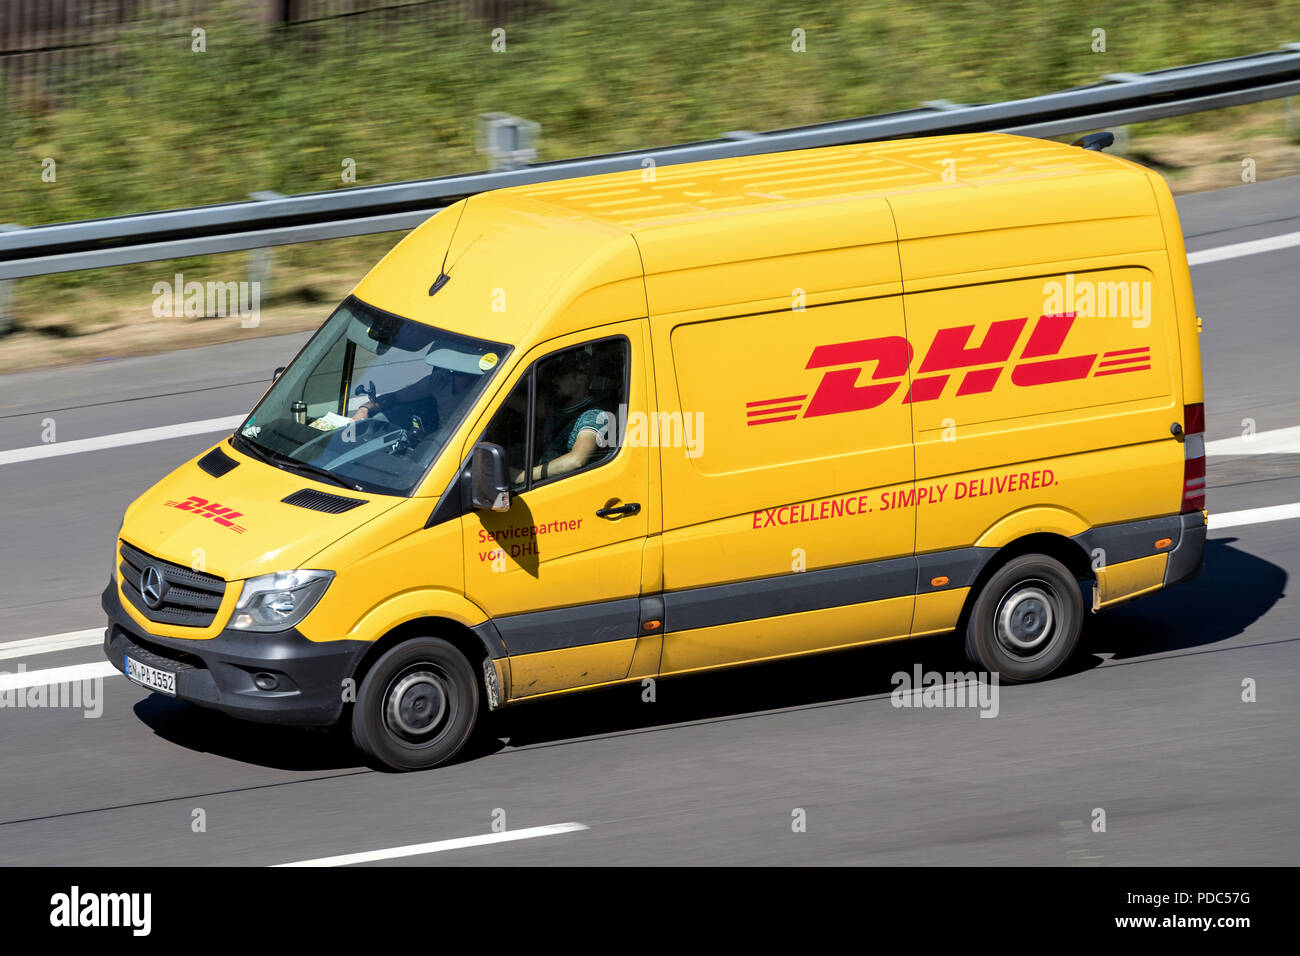 83f6cedda36830 DHL delivery van on motorway. DHL is a division of the German logistics  company Deutsche